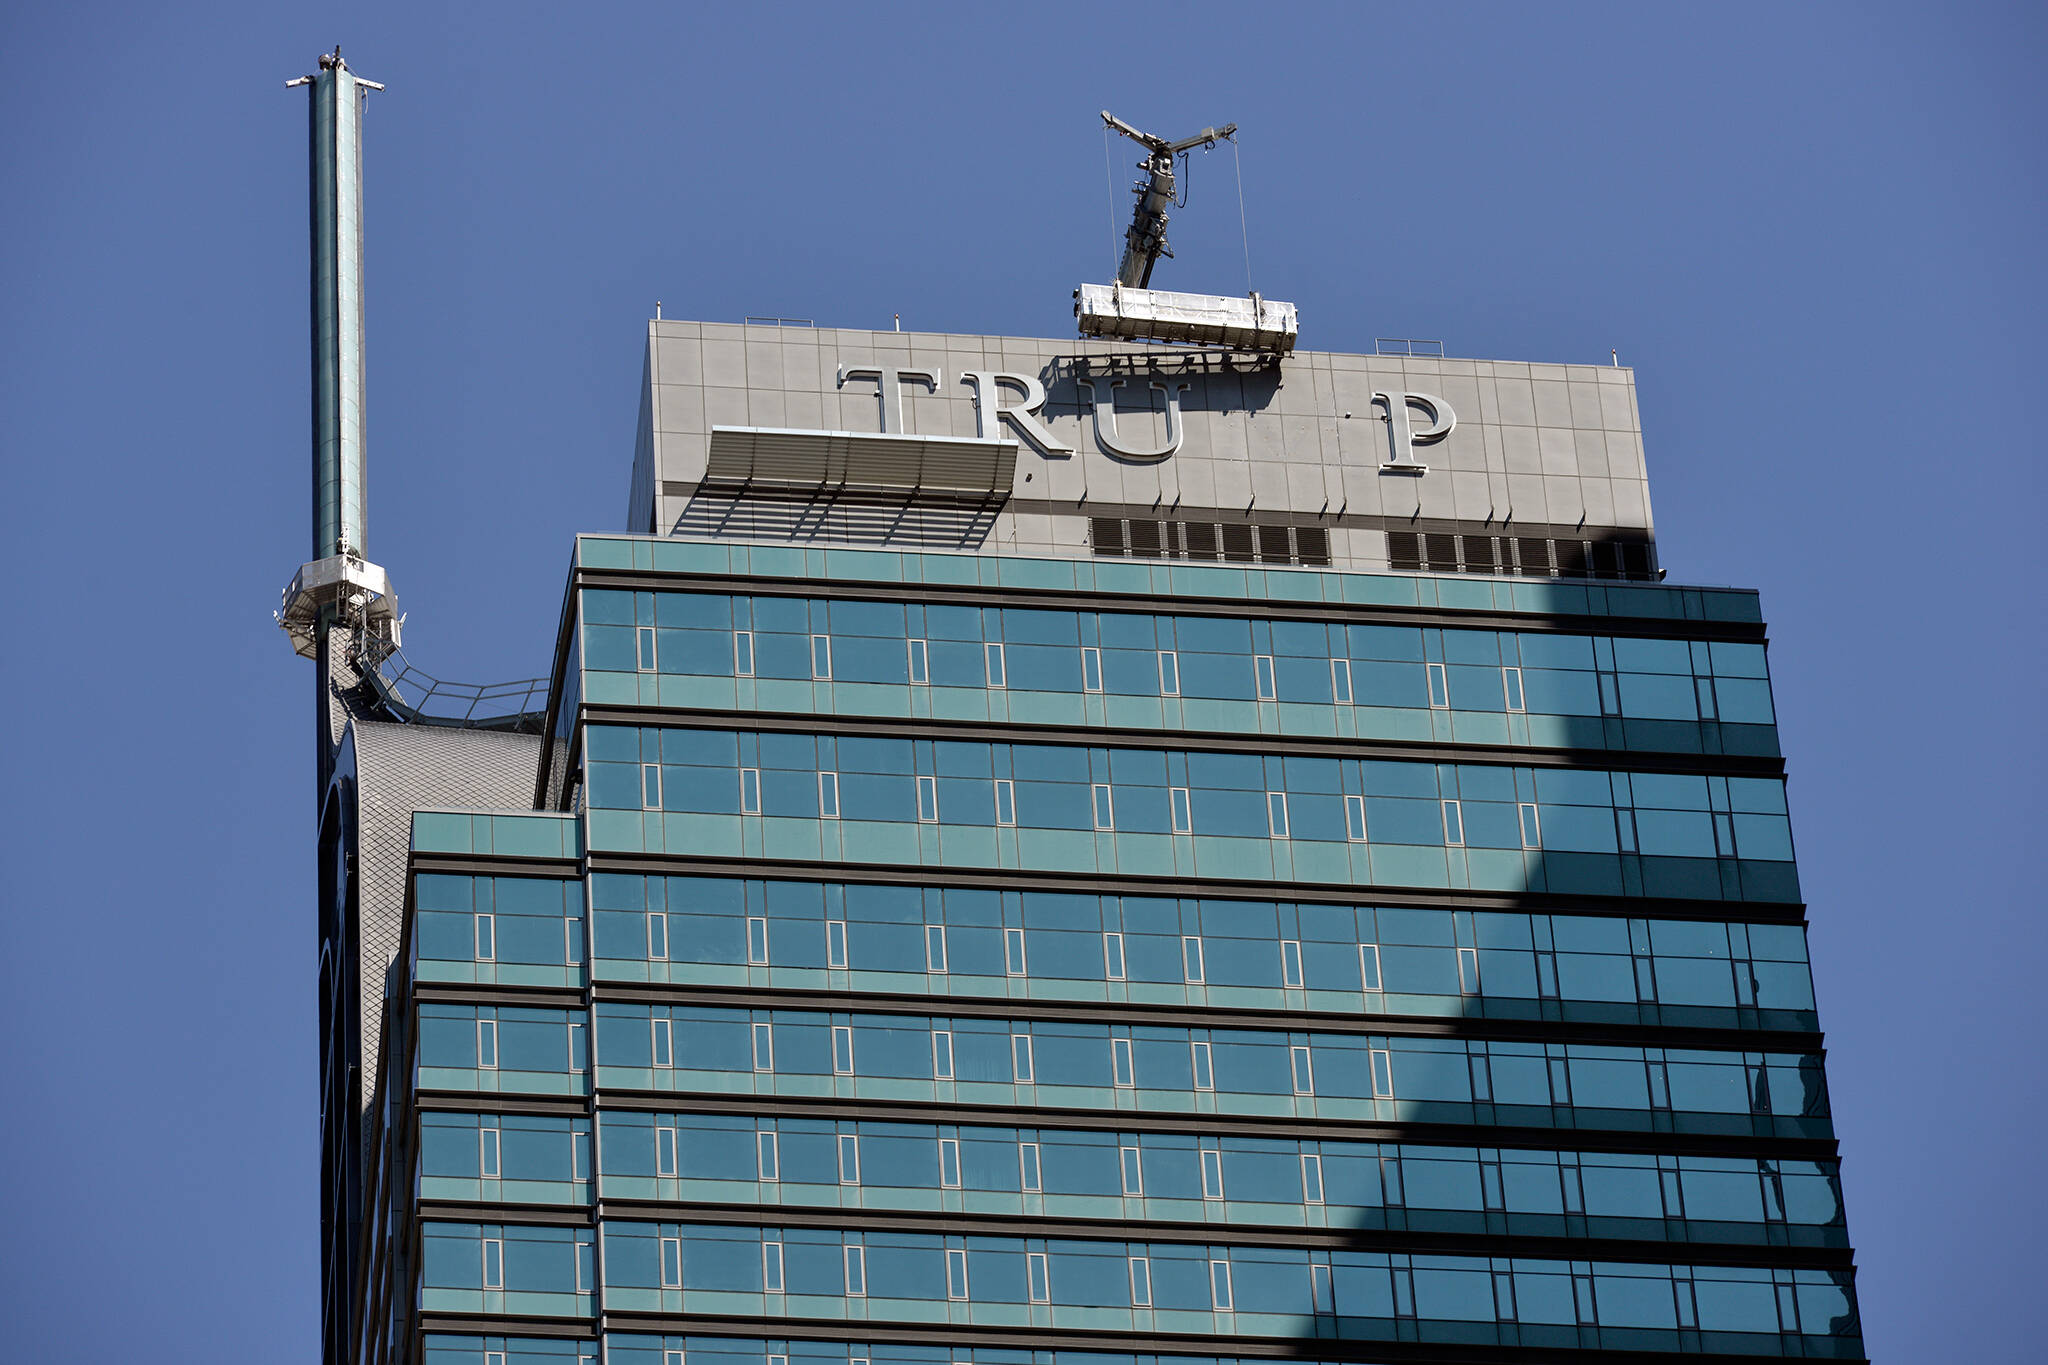 Trump 39 S Name Officially Being Removed From Toronto Tower